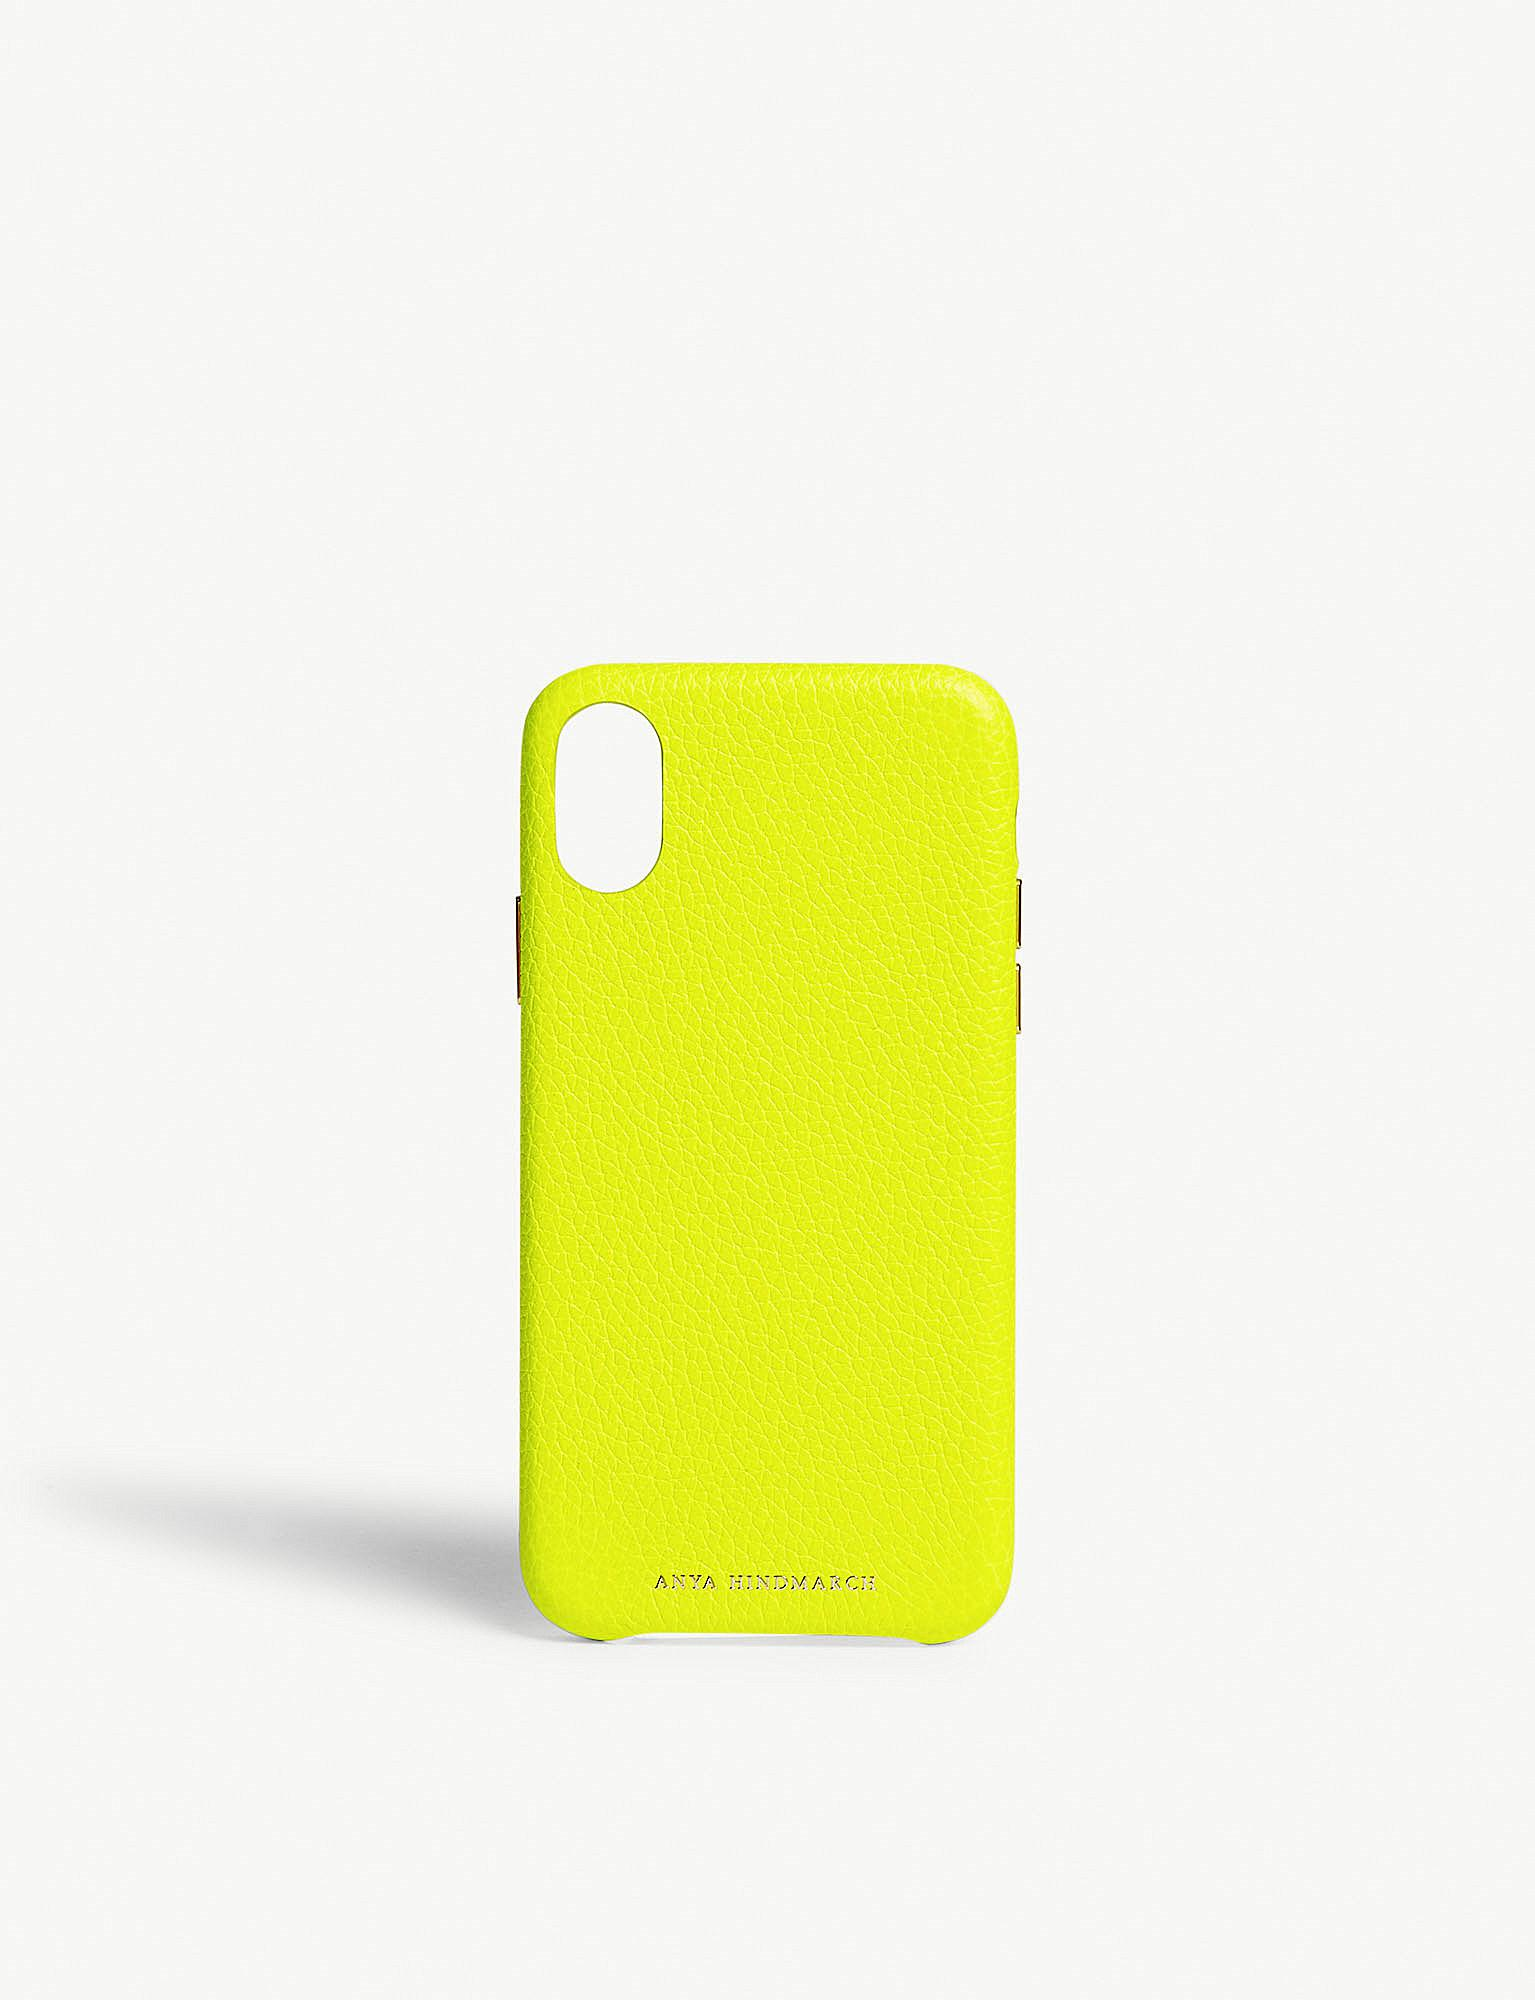 8a8386bd Anya Hindmarch Yellow Neon Leather Iphone X Case